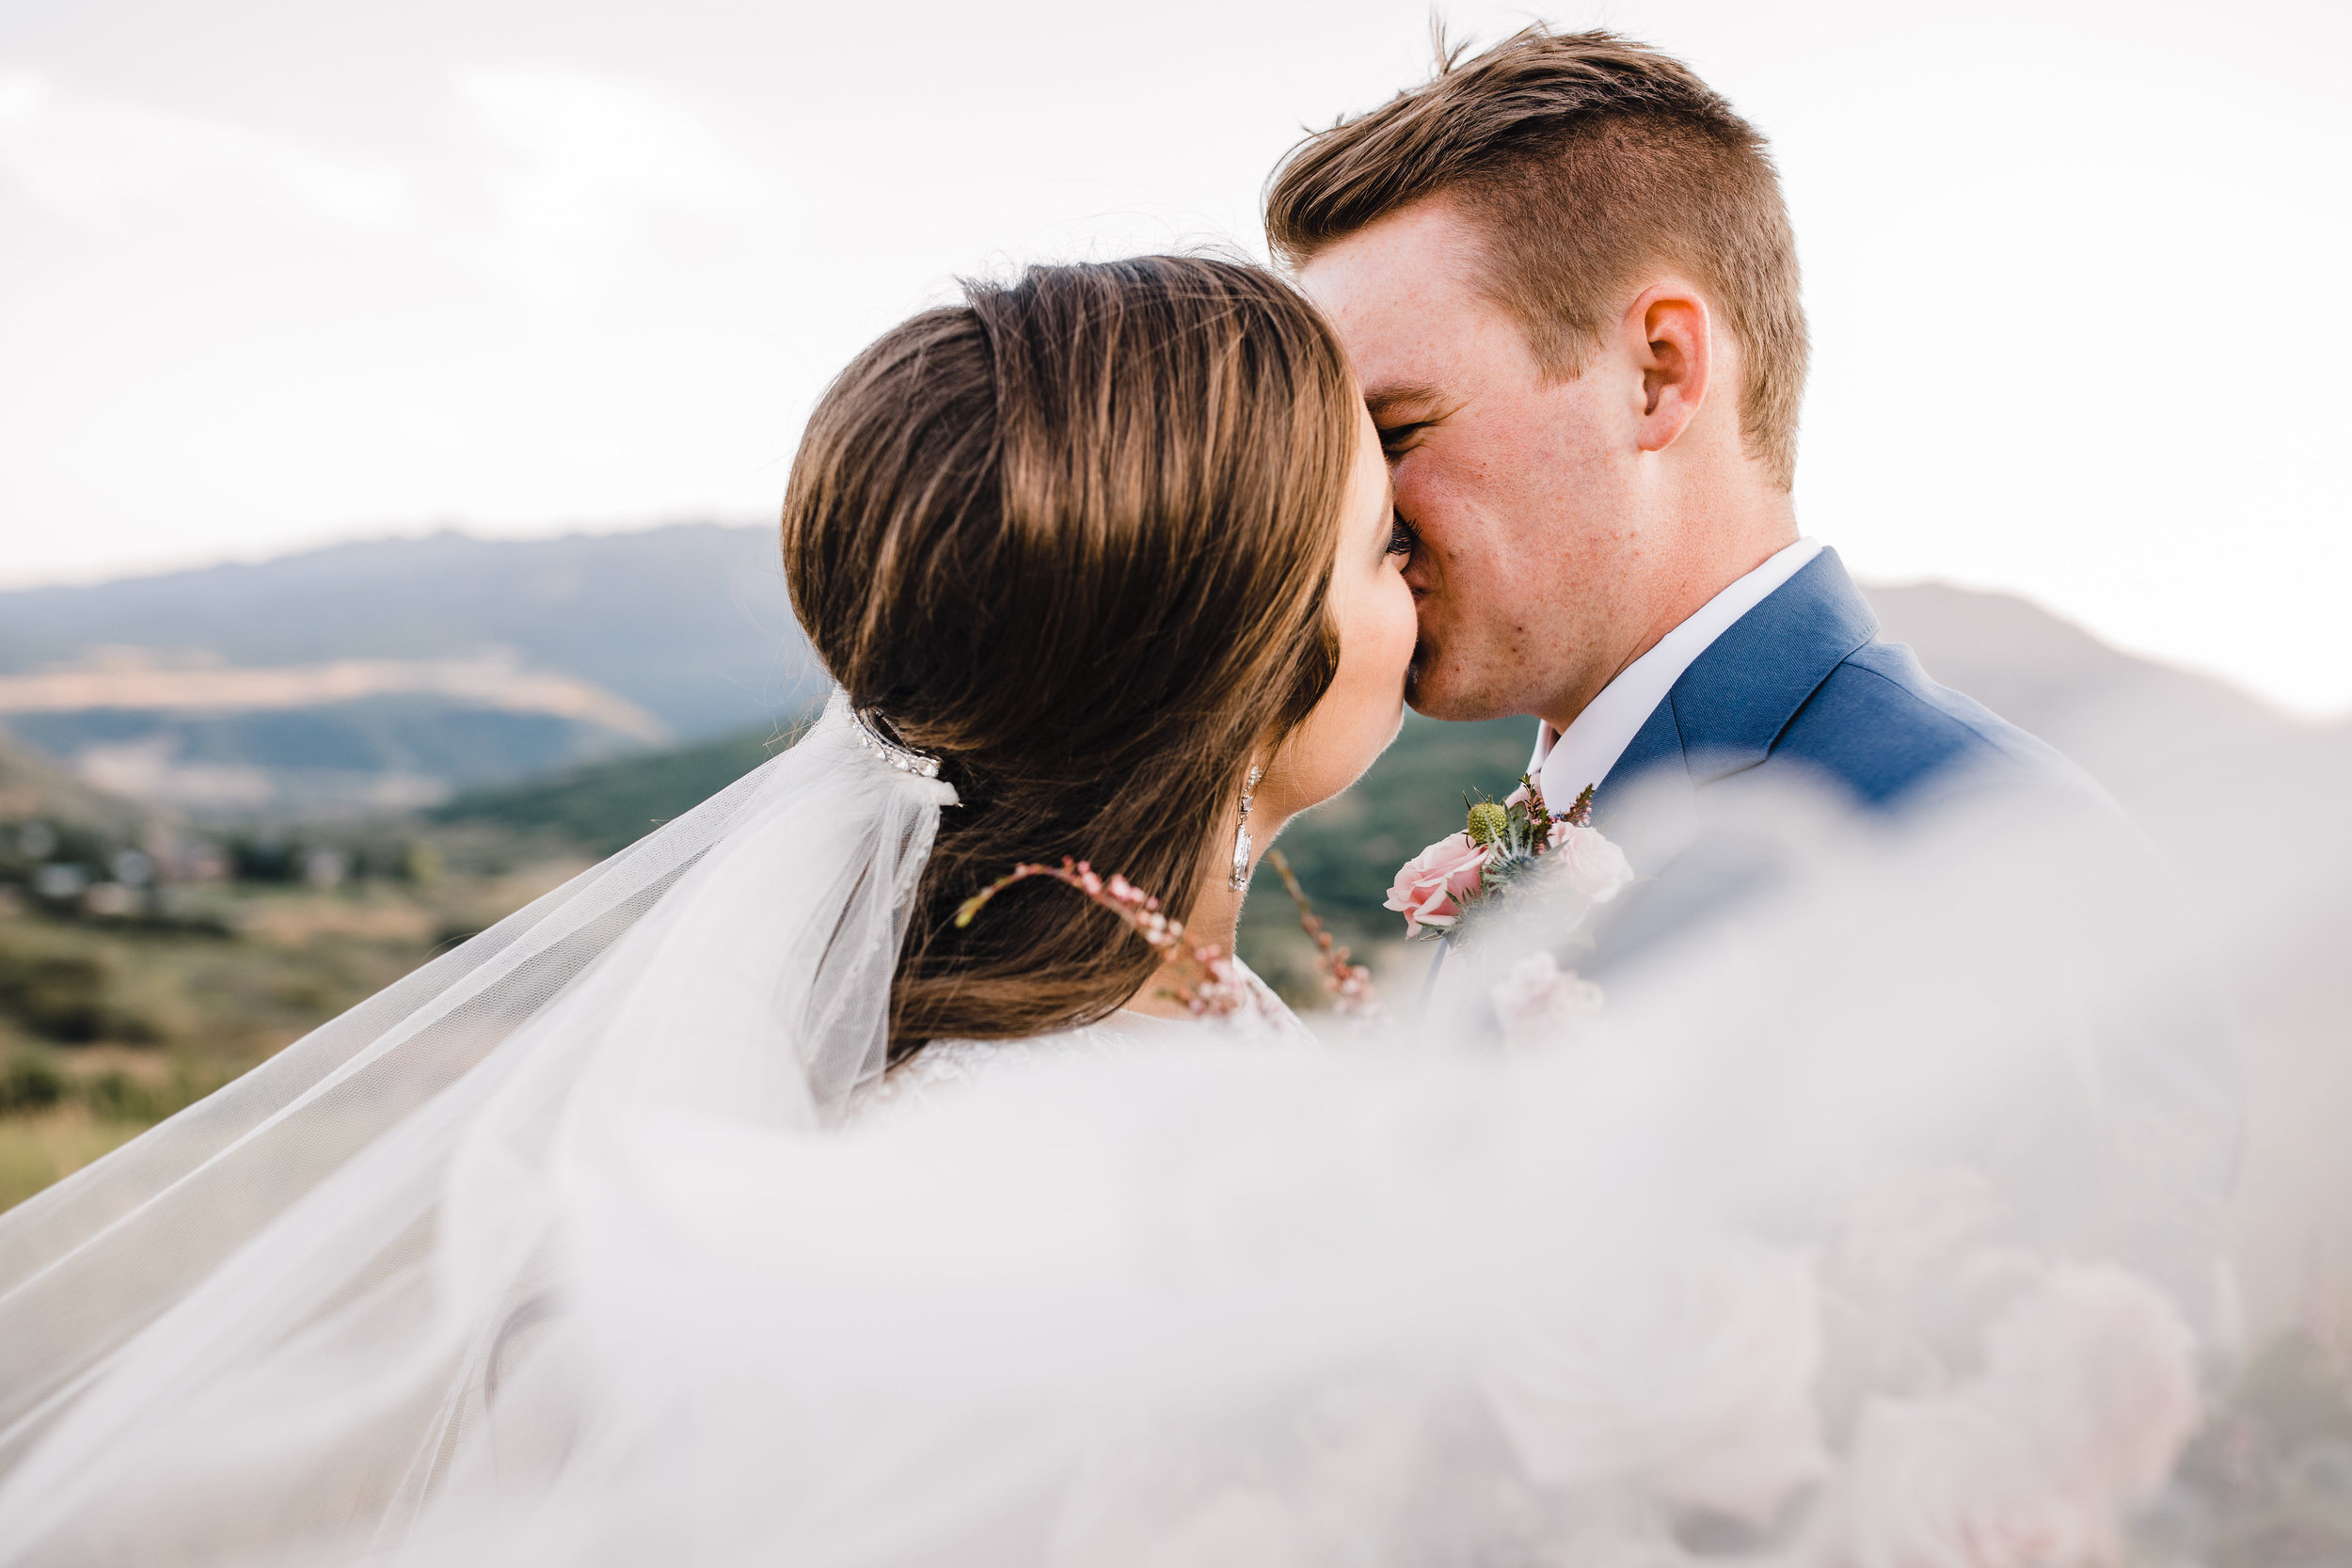 professional wedding photographer in cache valley windy veil kissing romantic pink bouquet